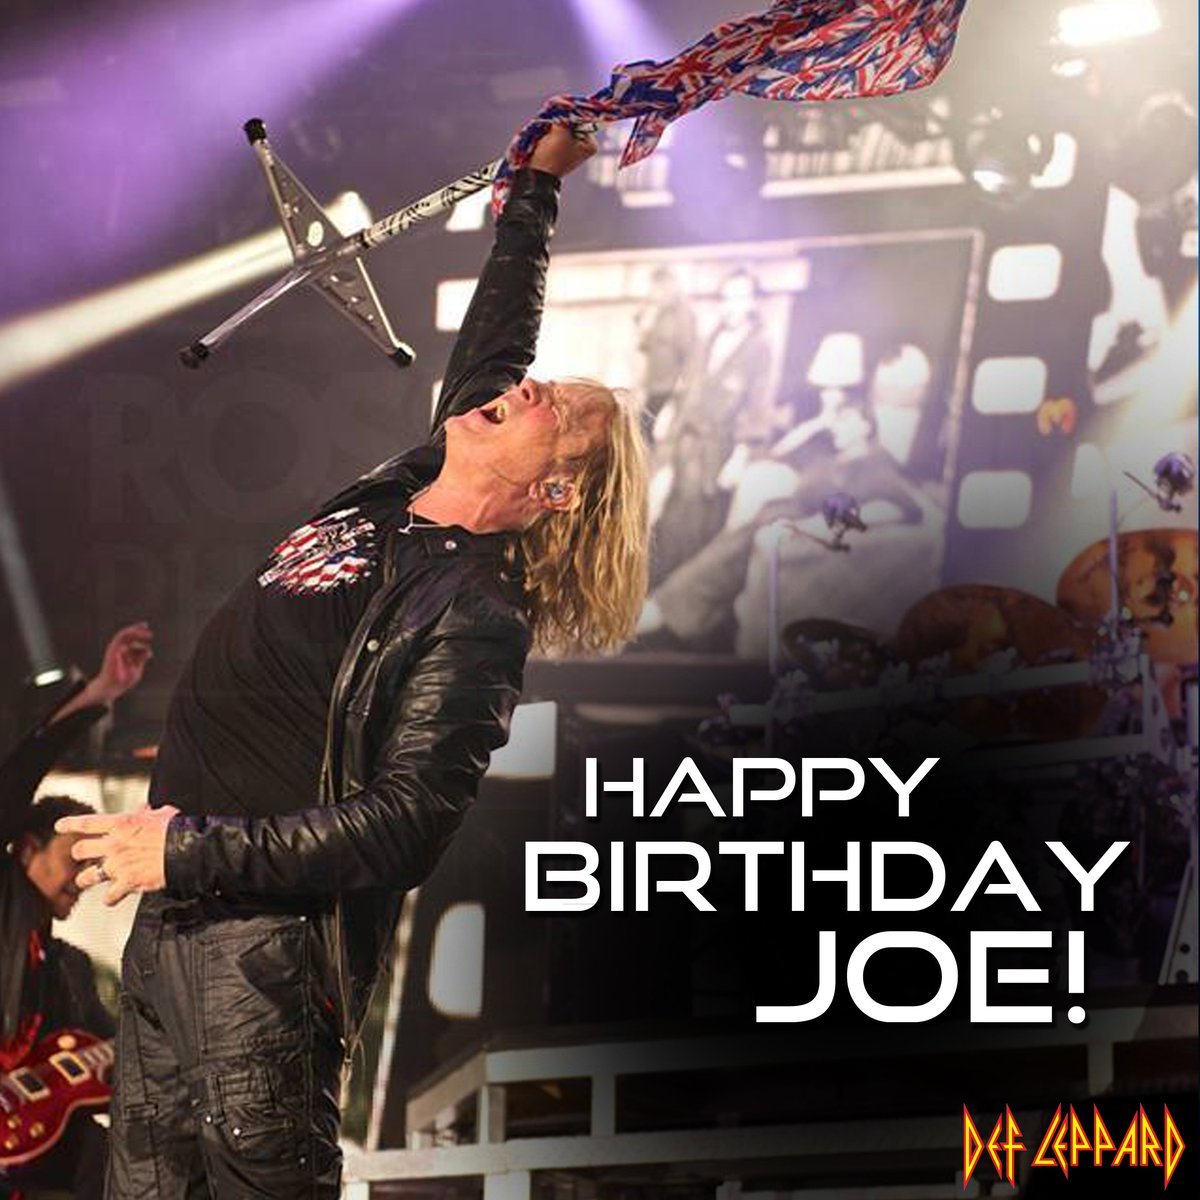 Join us in wishing a HAPPY BIRTHDAY to our very own Joe Elliott! Blast some Leppard LOUD today & send Joe your love! https://t.co/lIIhu4ohrB